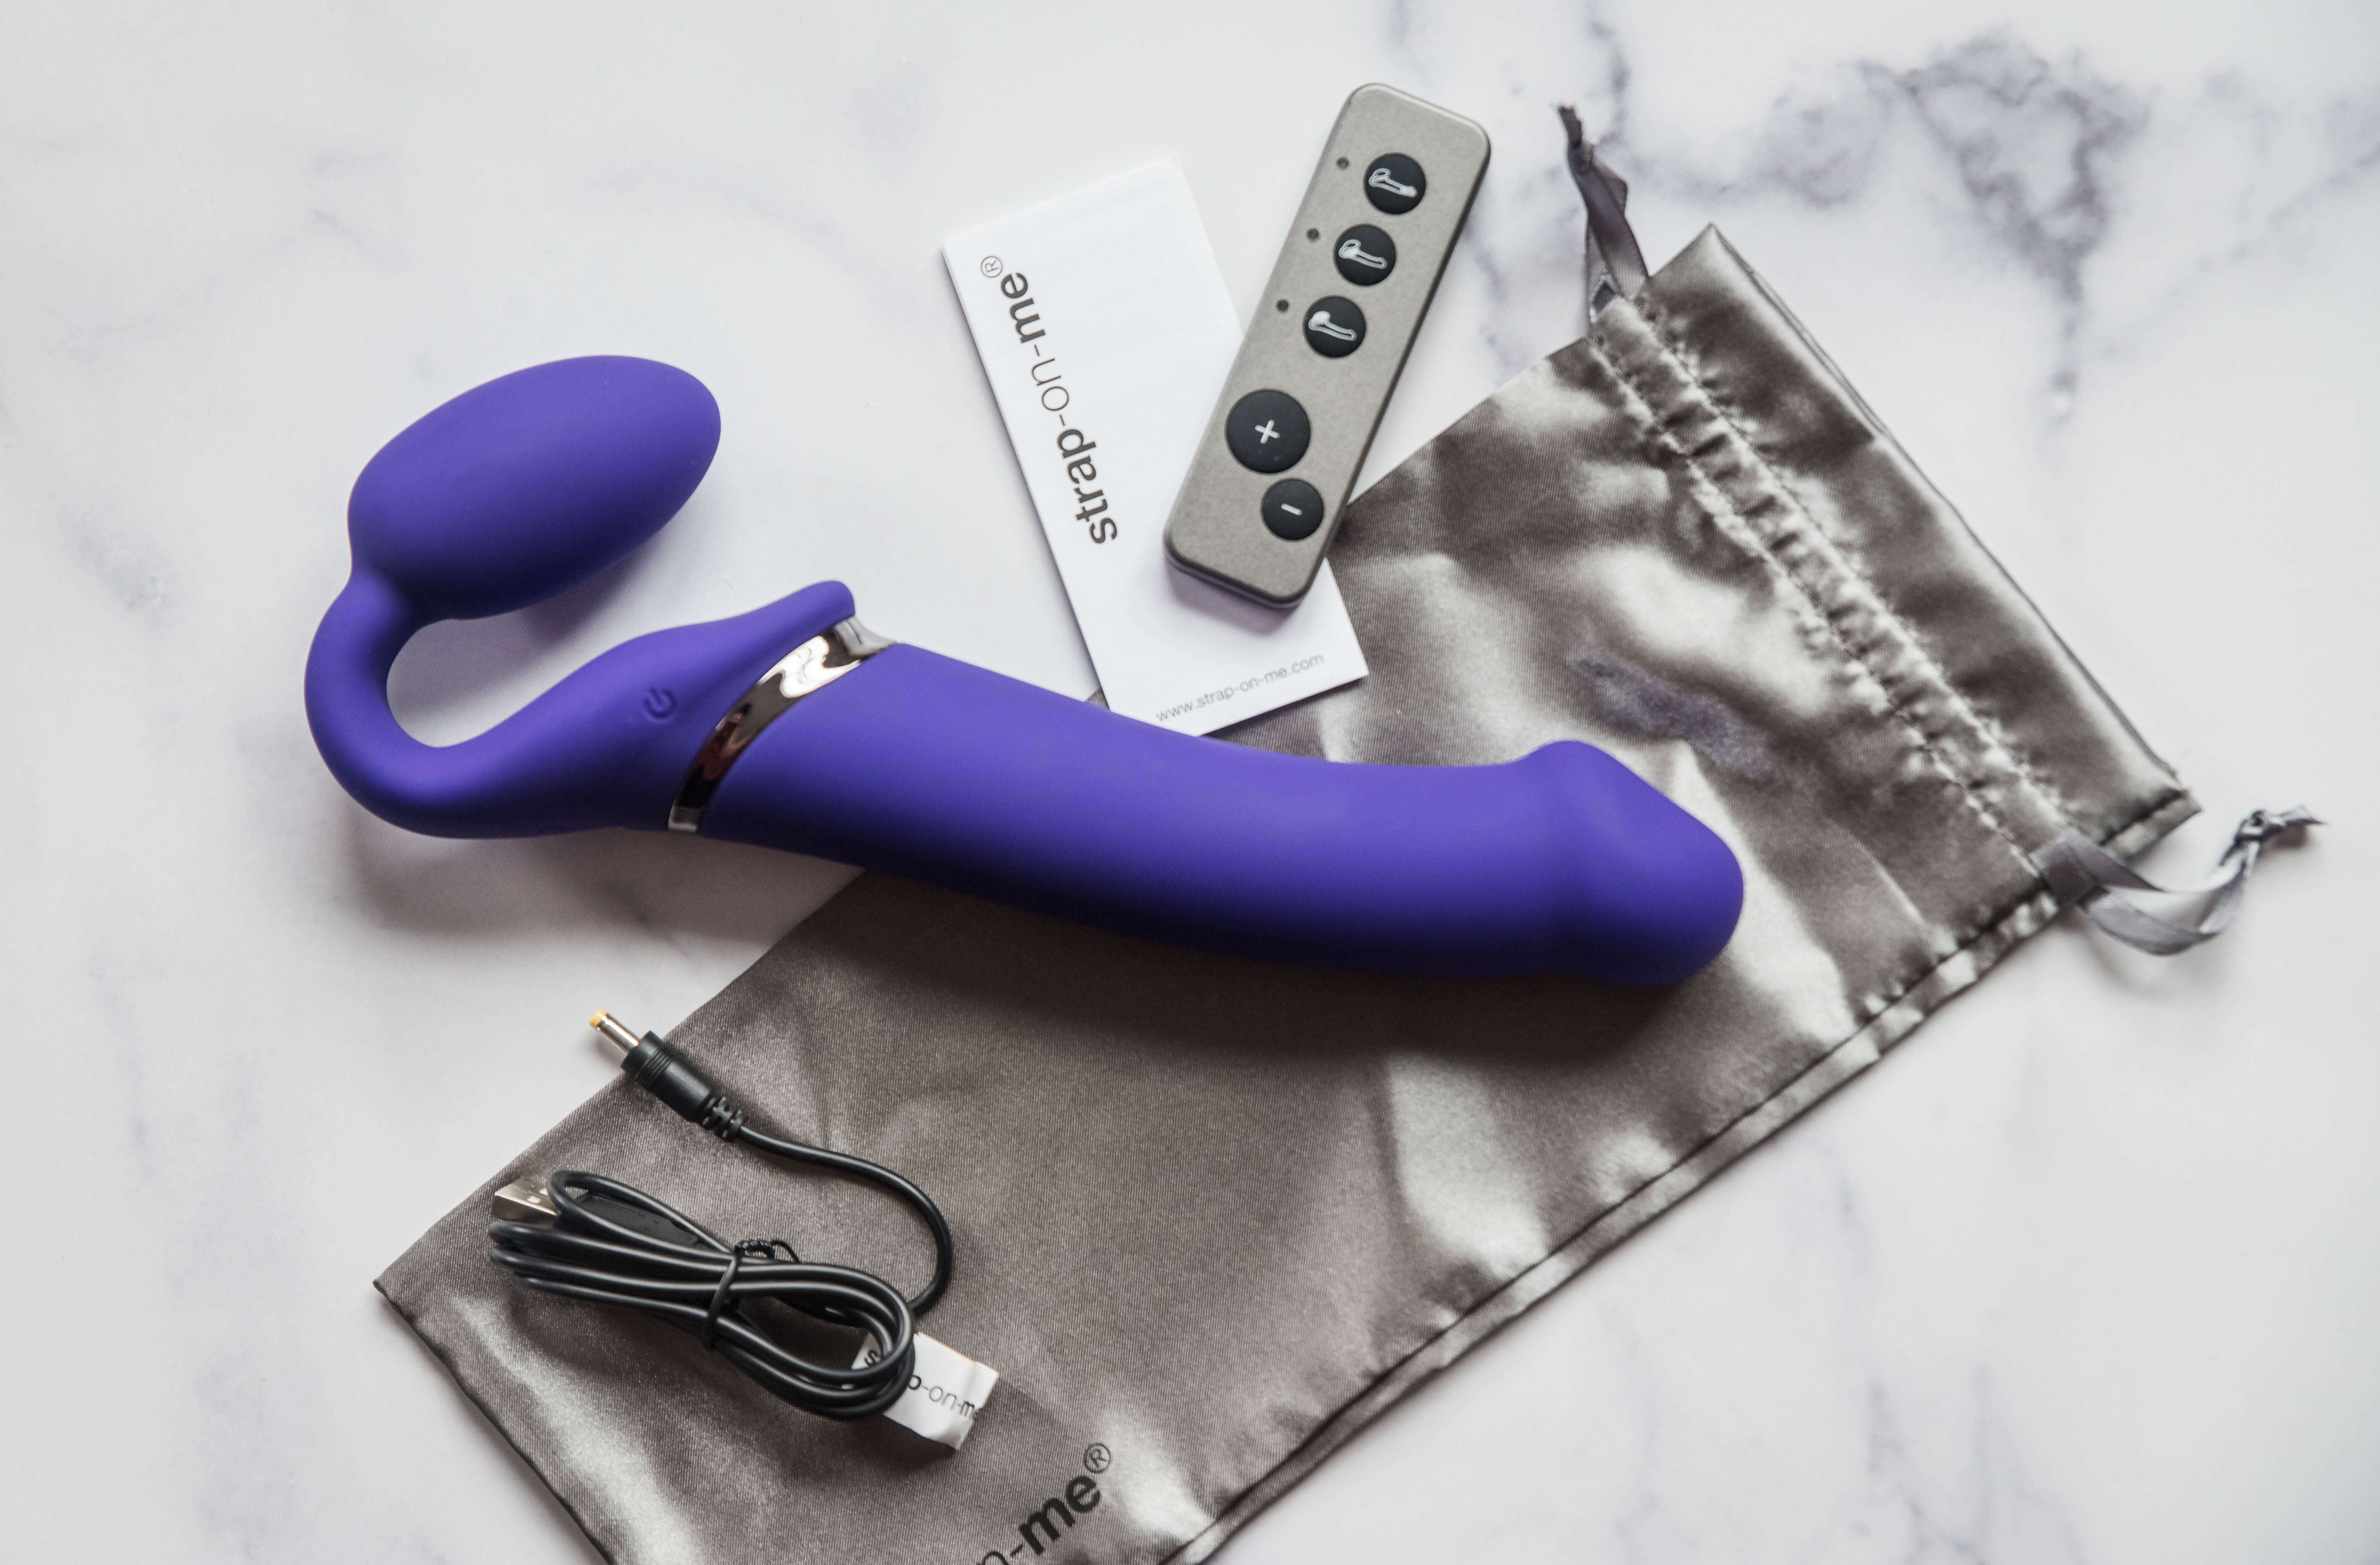 Strap-On-Me Vibrating Bendable Strapless Strap-On: Sex Toy Review